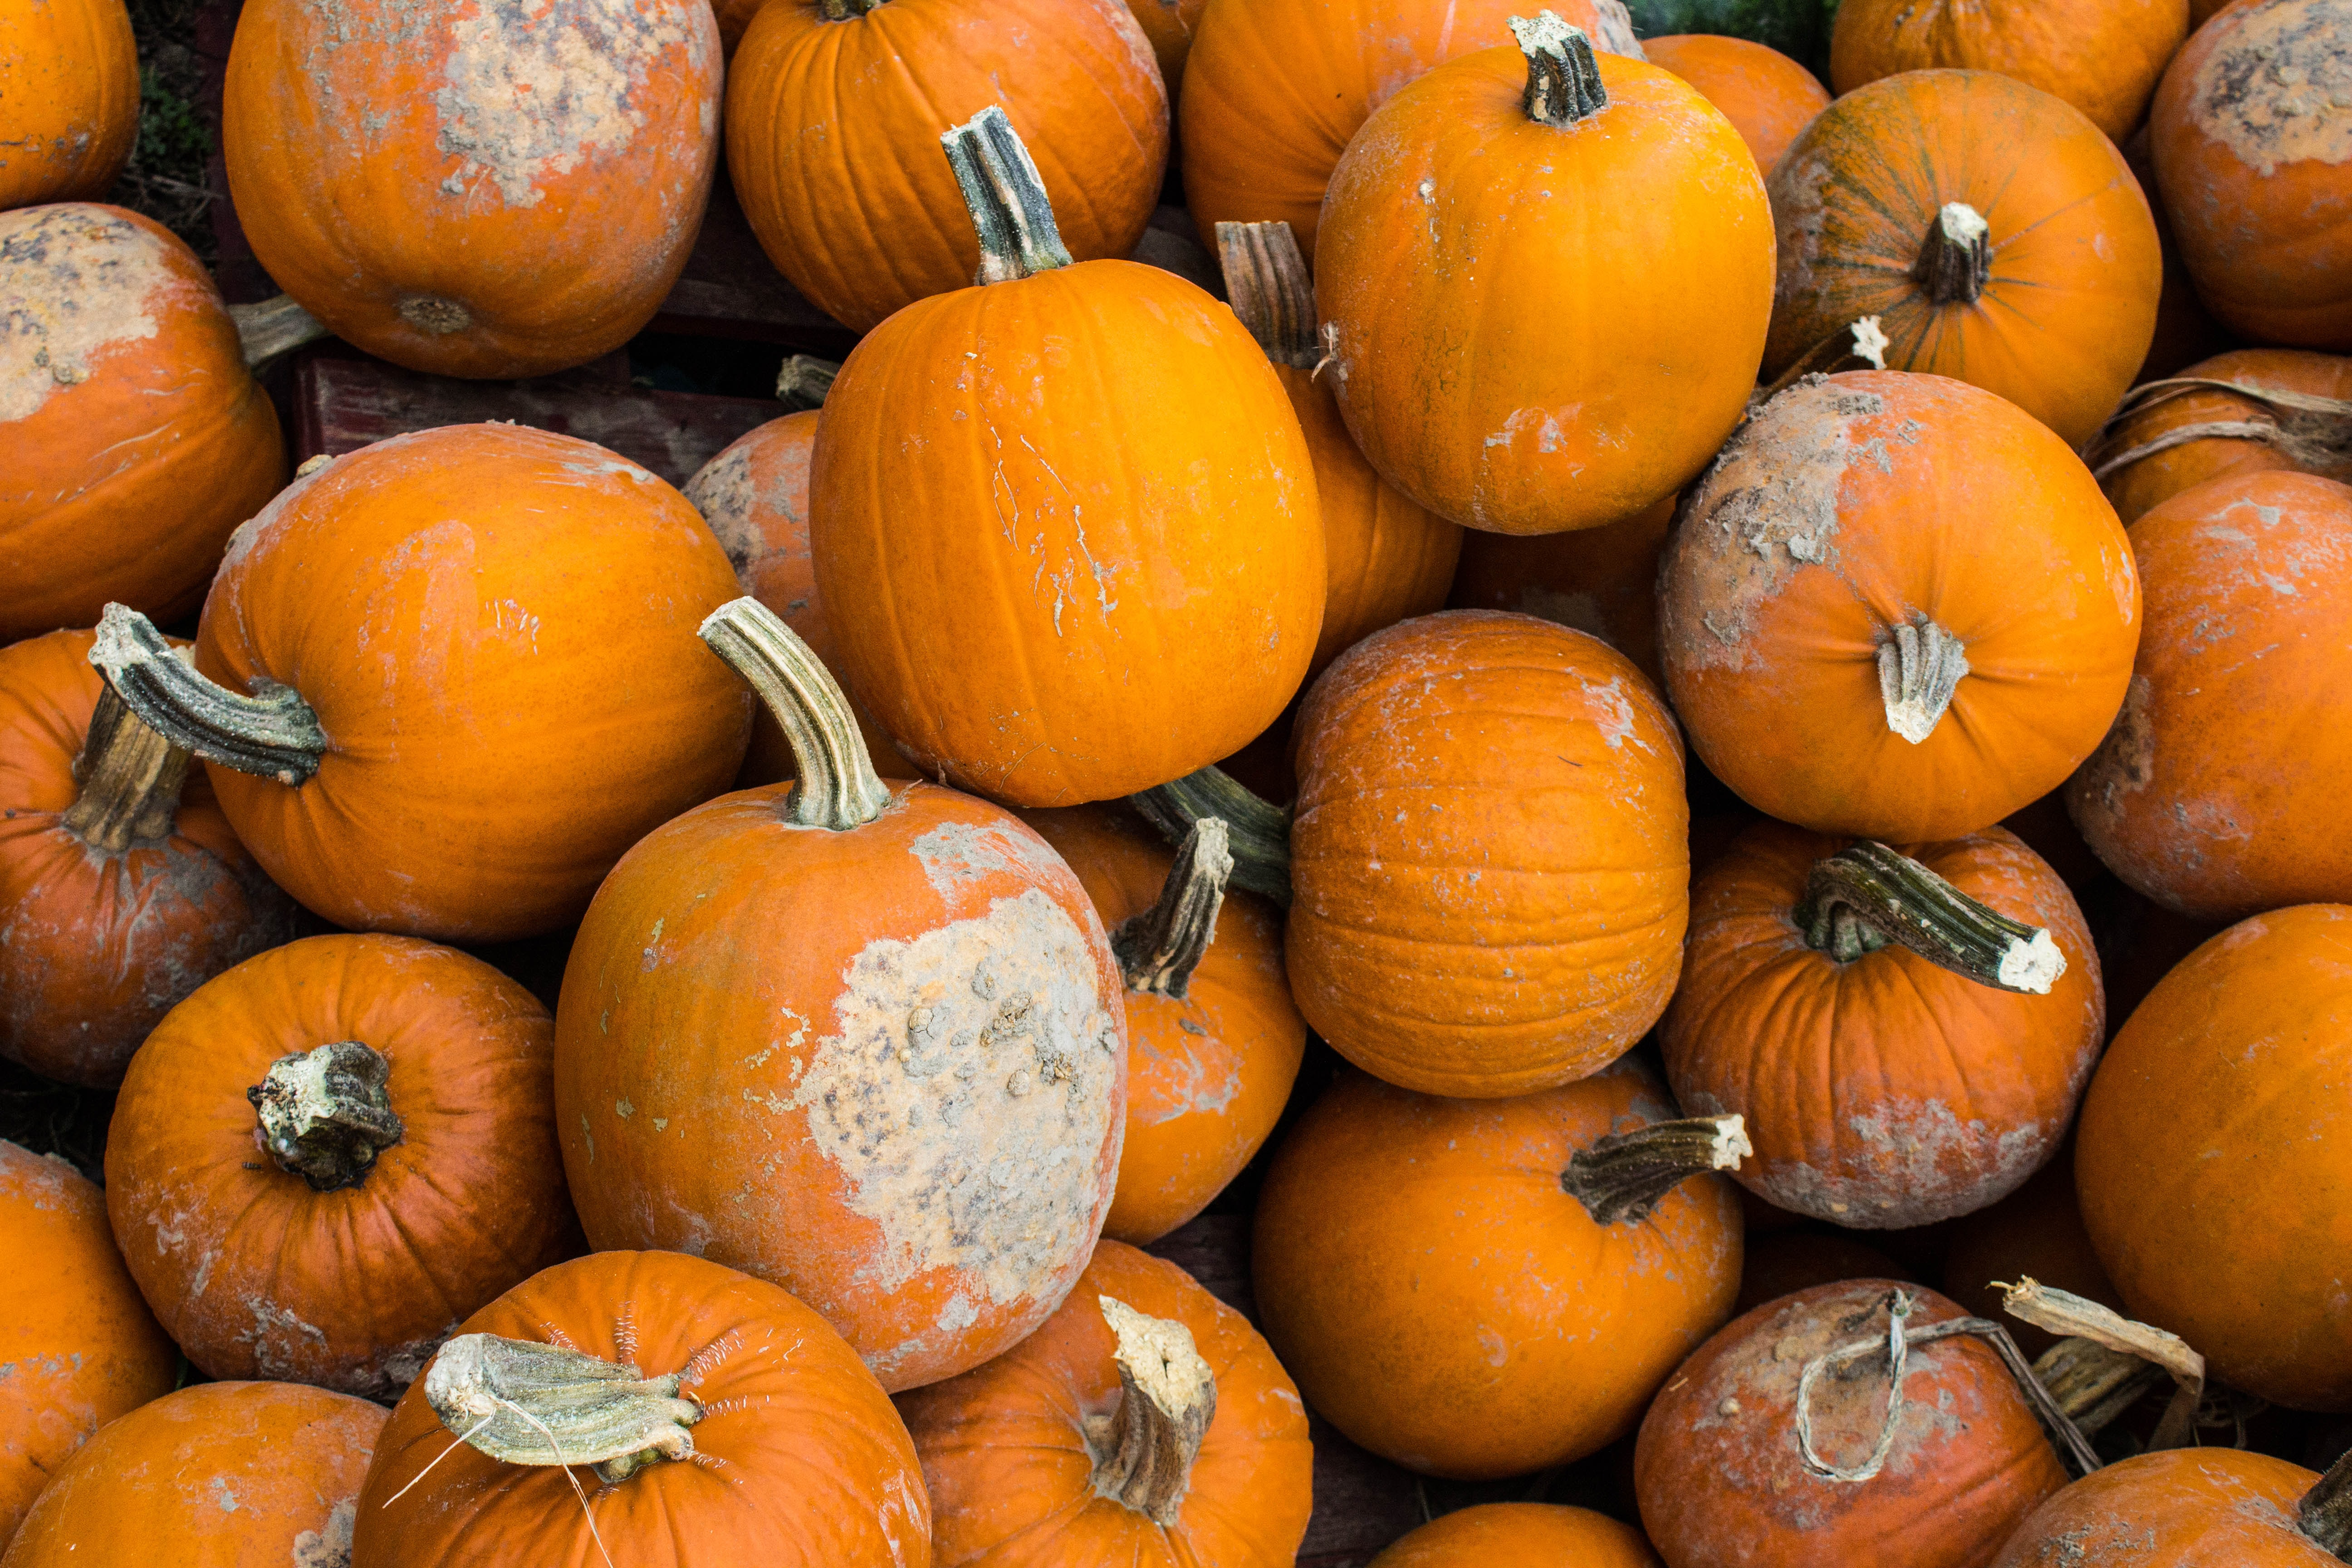 A collection of Halloween pumpkins with stems with patches on them